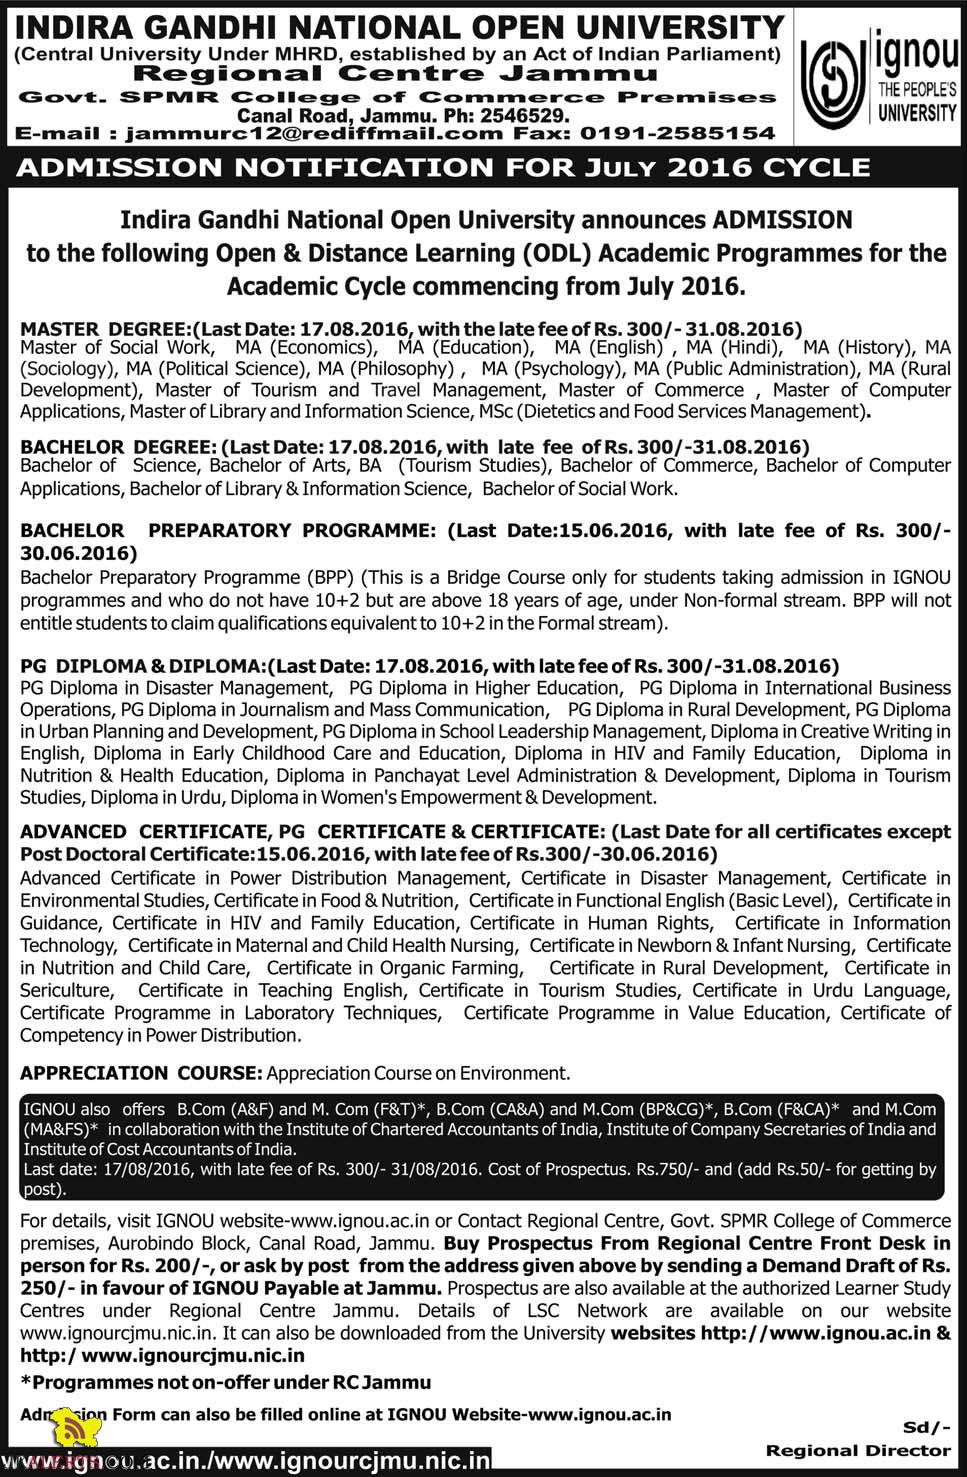 IGNOU Admission notification for July 2016 Cycle